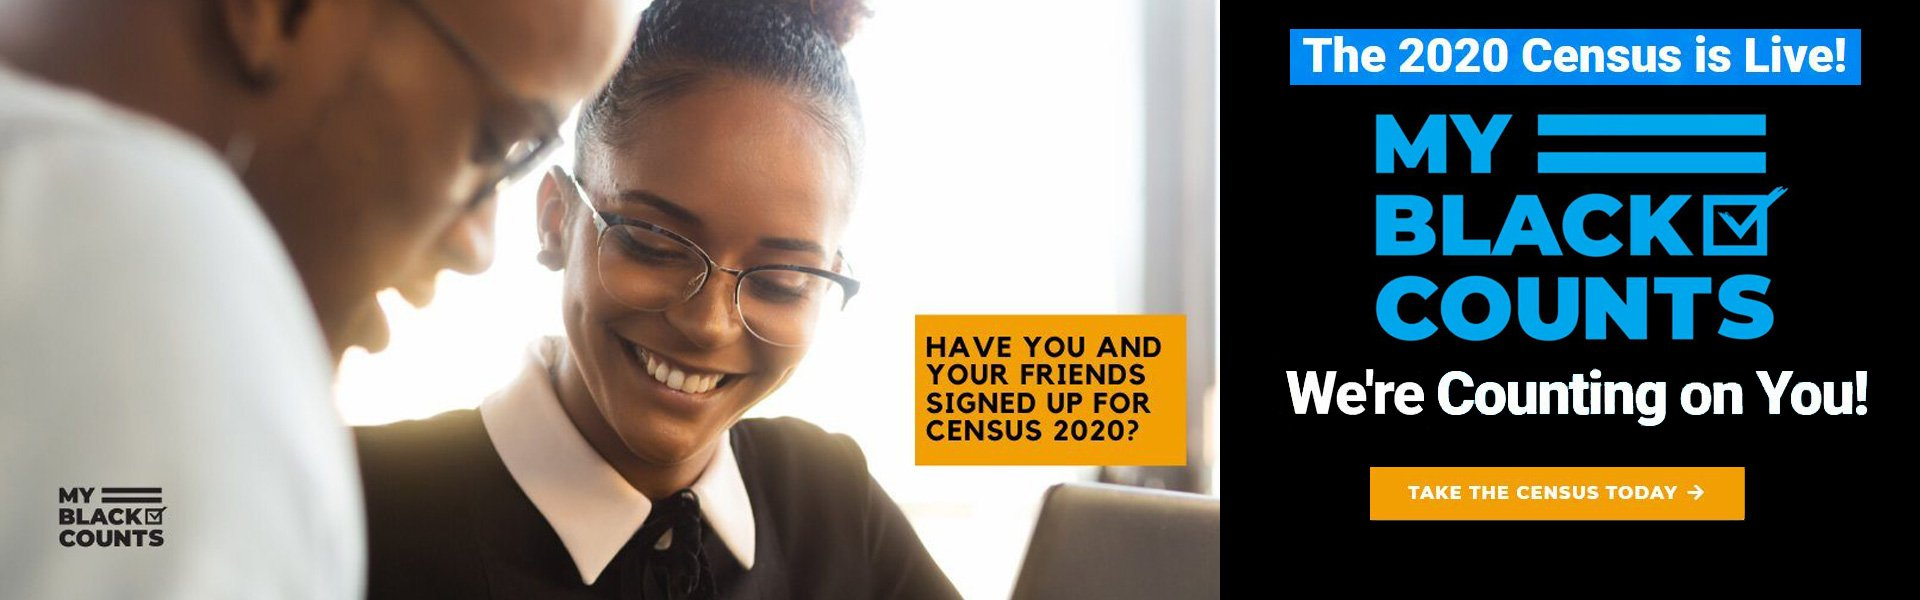 http://www.blackculturalevents.com/wp-content/uploads/2020/08/slider_main_v53_census.jpg